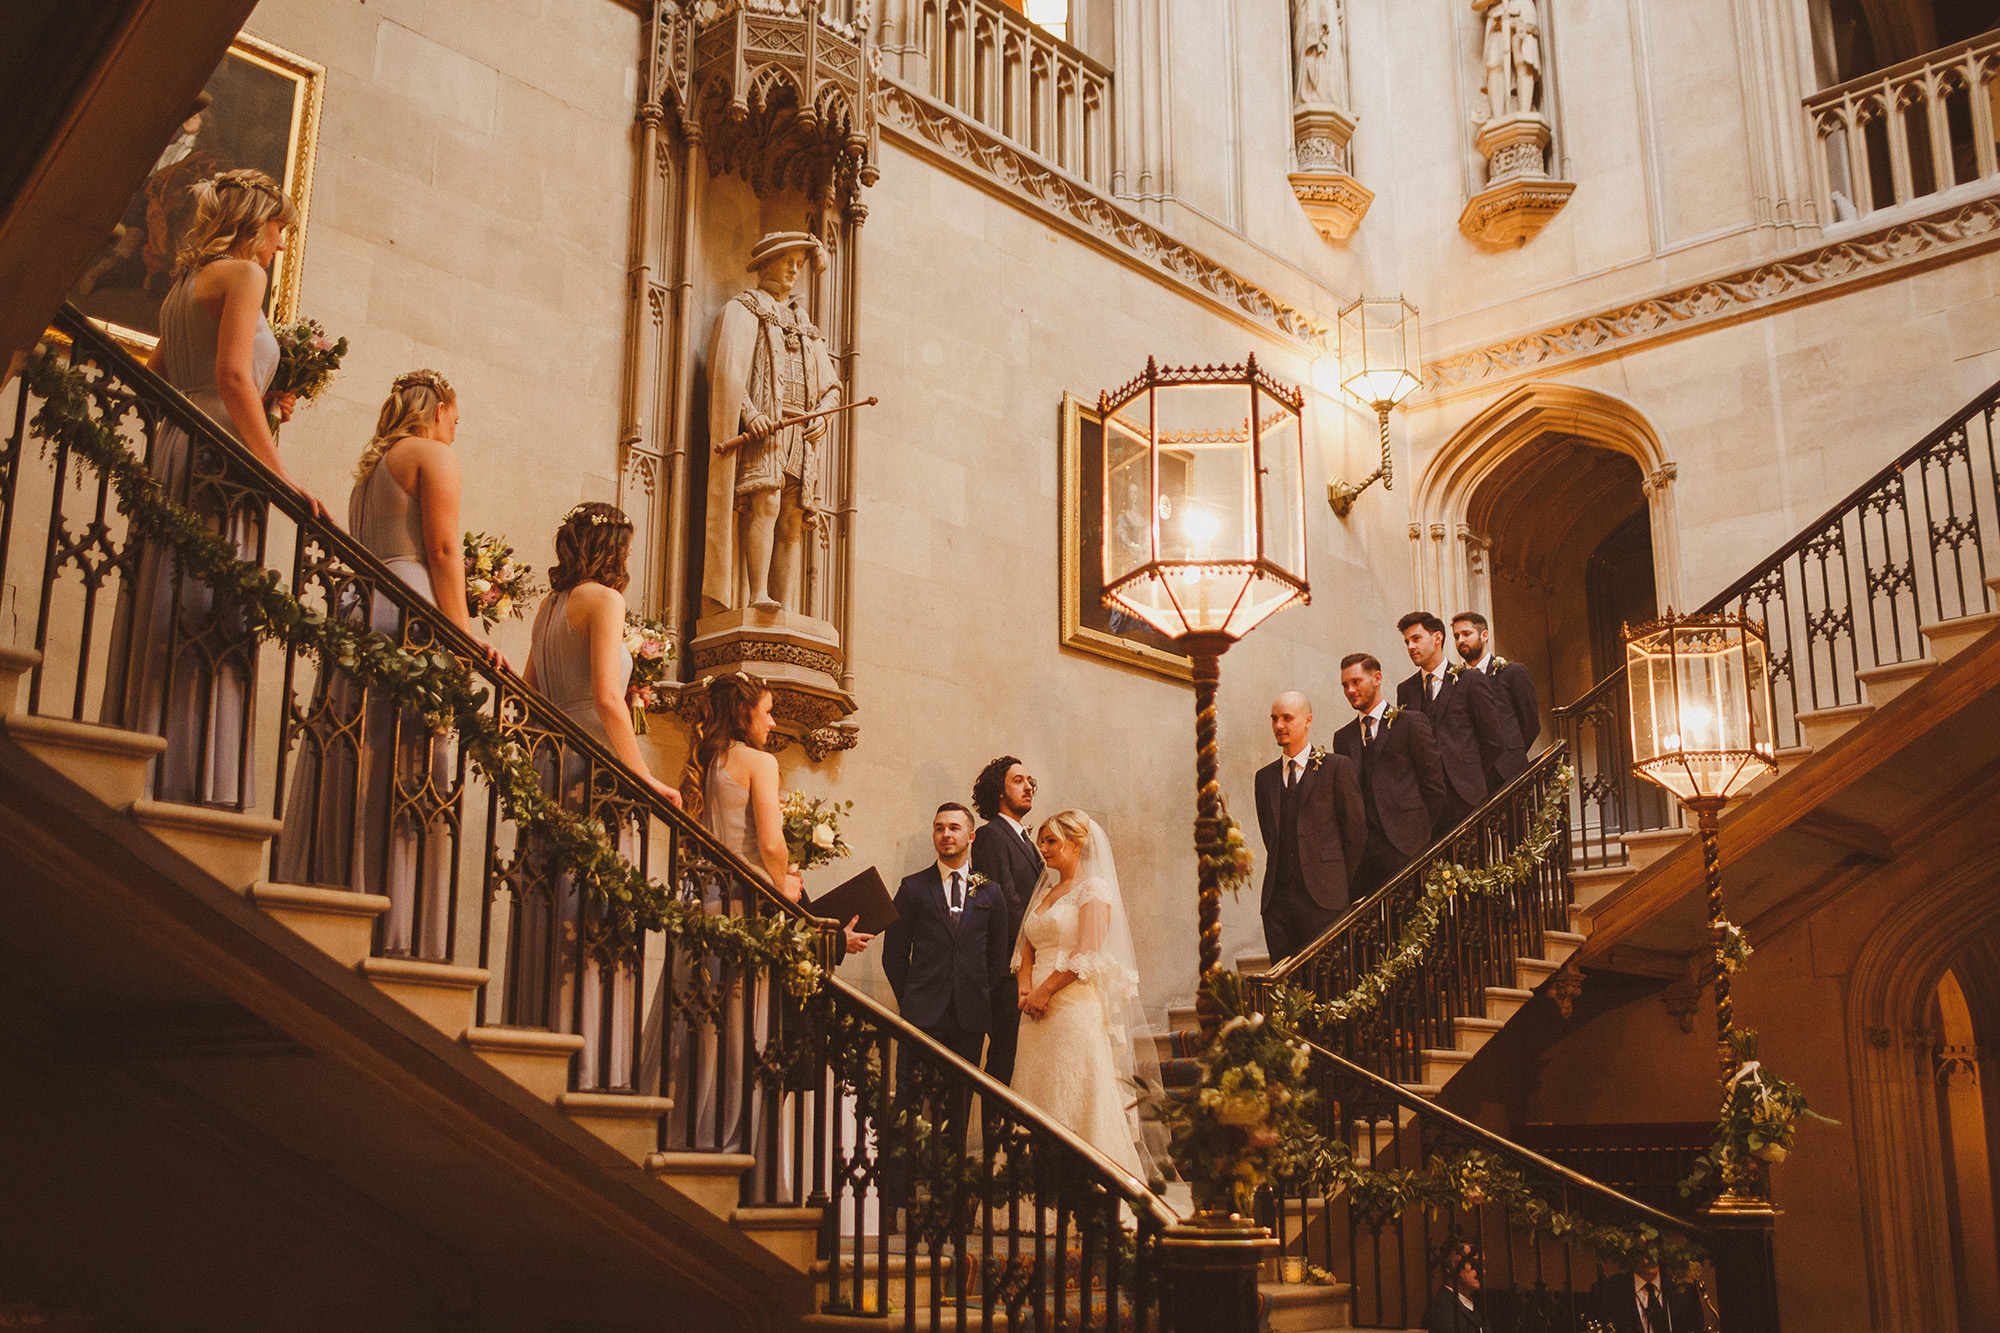 Ceremony on Stairway at Ashridge House - photo by Ed Peers